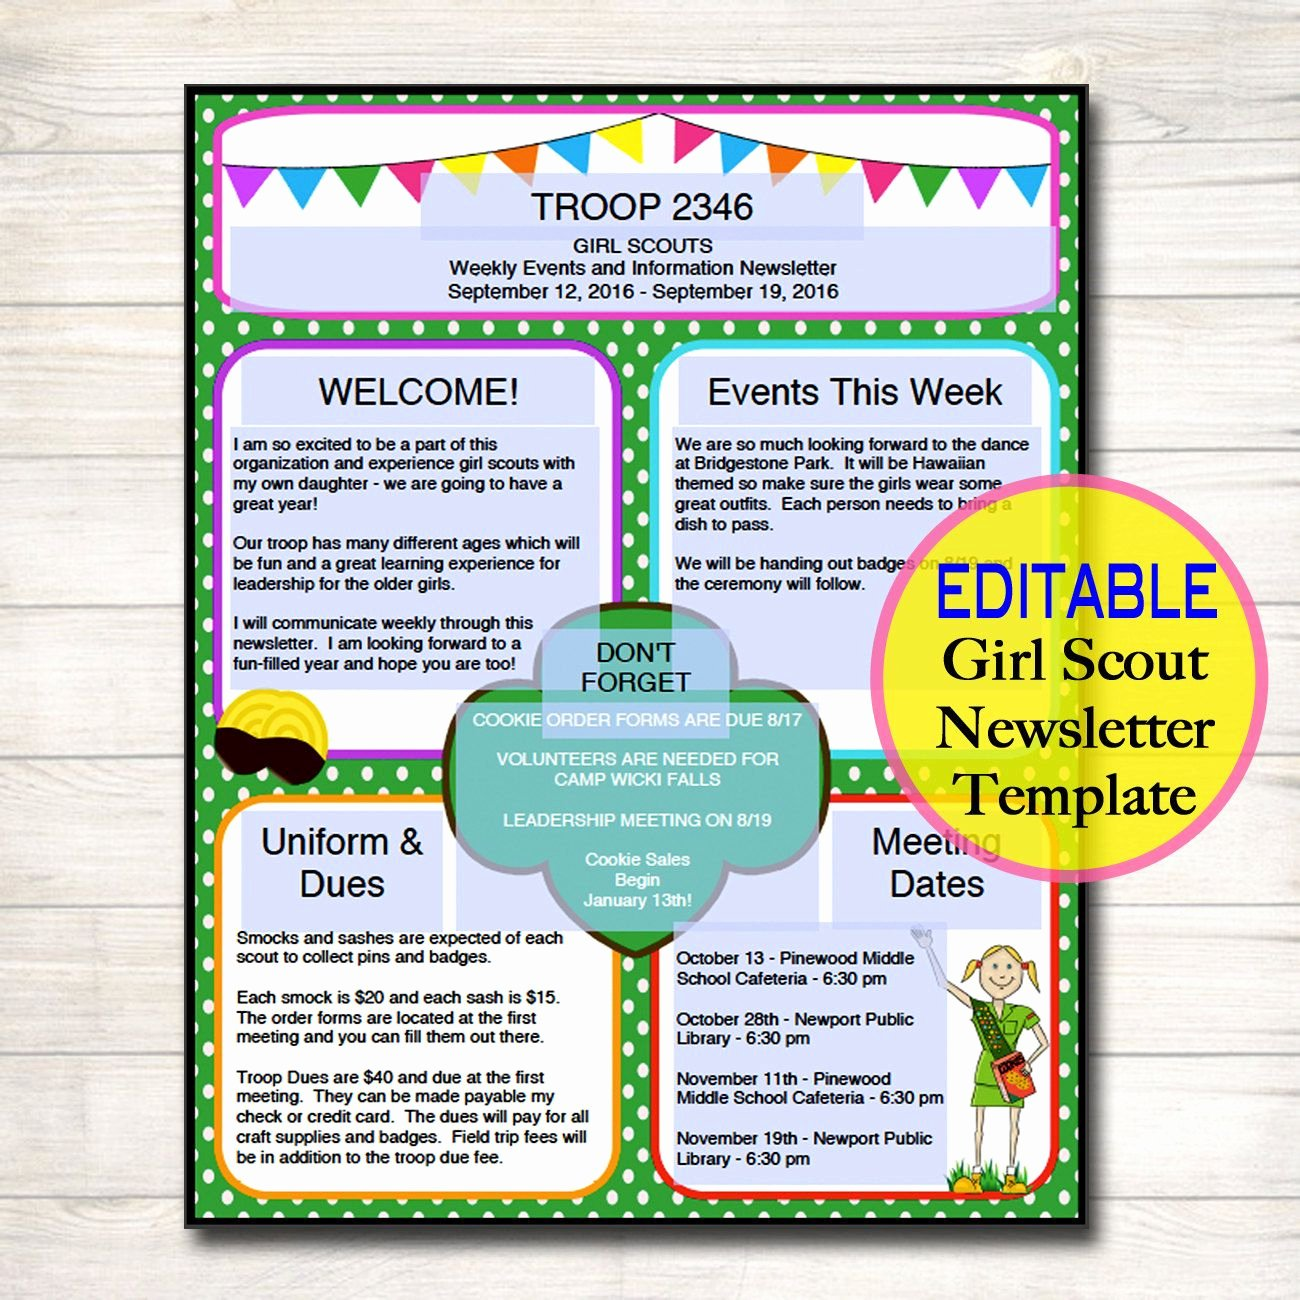 Girl Scout Flyer Template Beautiful Girl Scouts Newsletter Template Instant by